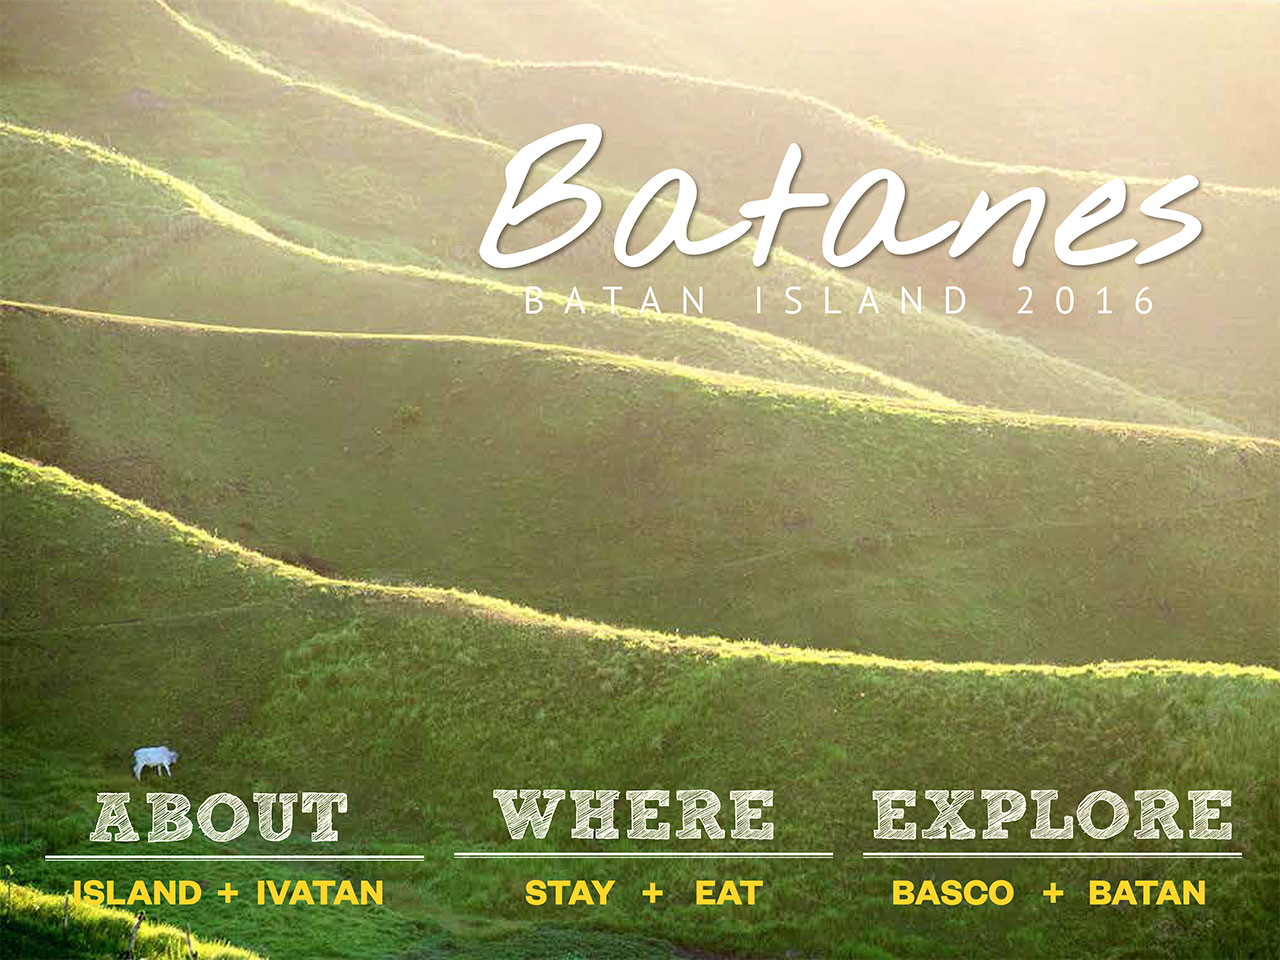 The Batanes Travel Guide Batan Island 2016 Edition